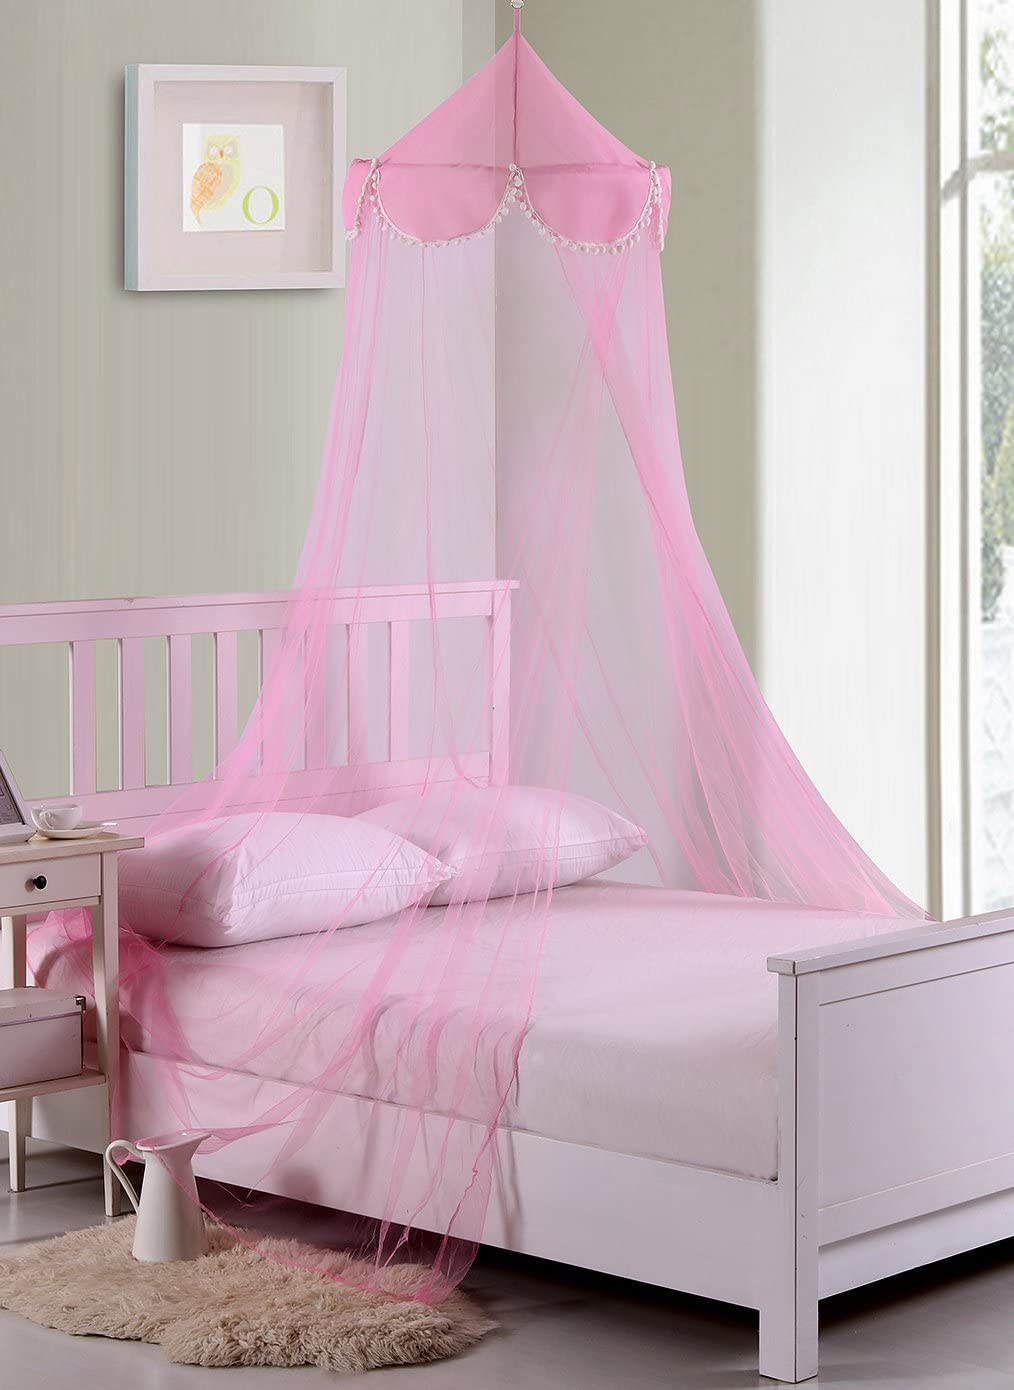 Pink One Size Fantasy Kids But Tons /& Bows Collapsible Hoop Sheer Bed Canopy